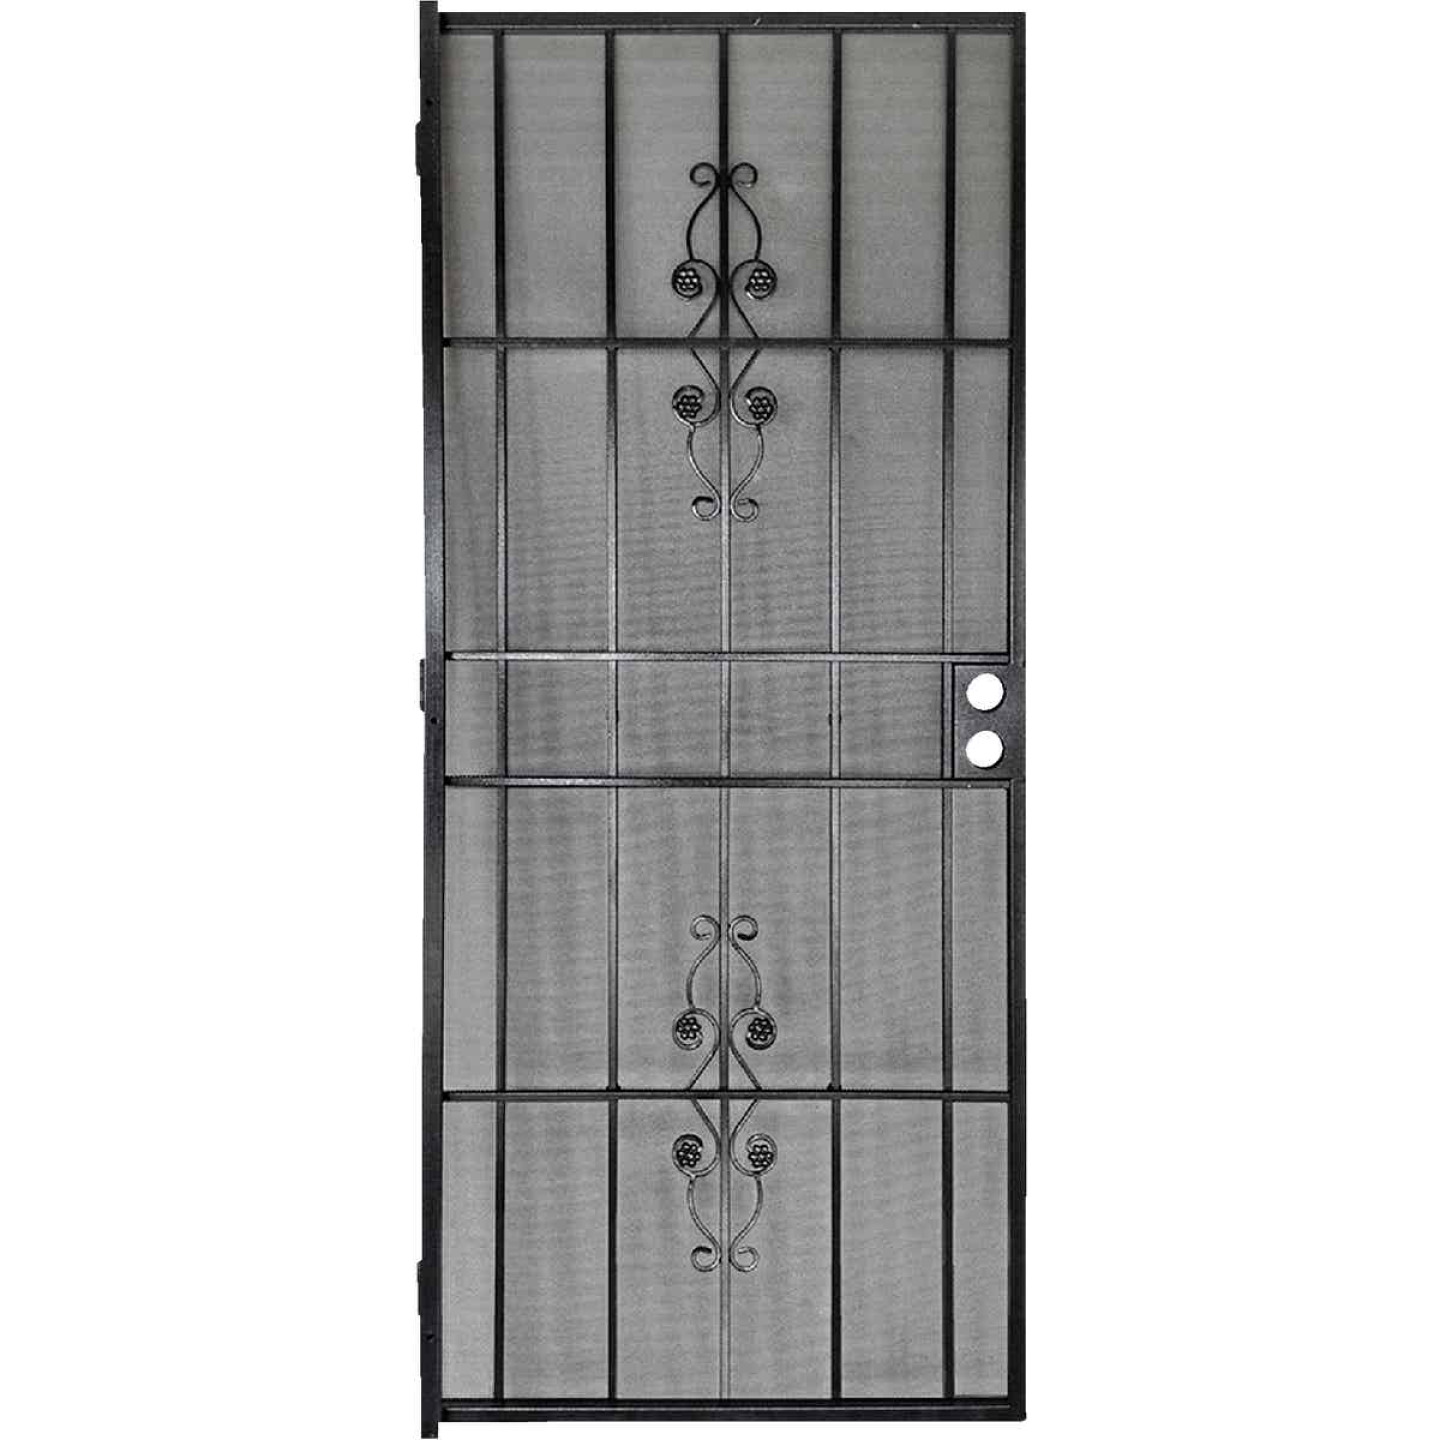 Precision Flagstaff 36 In. W x 80 In. H Black Steel Security Door Image 1